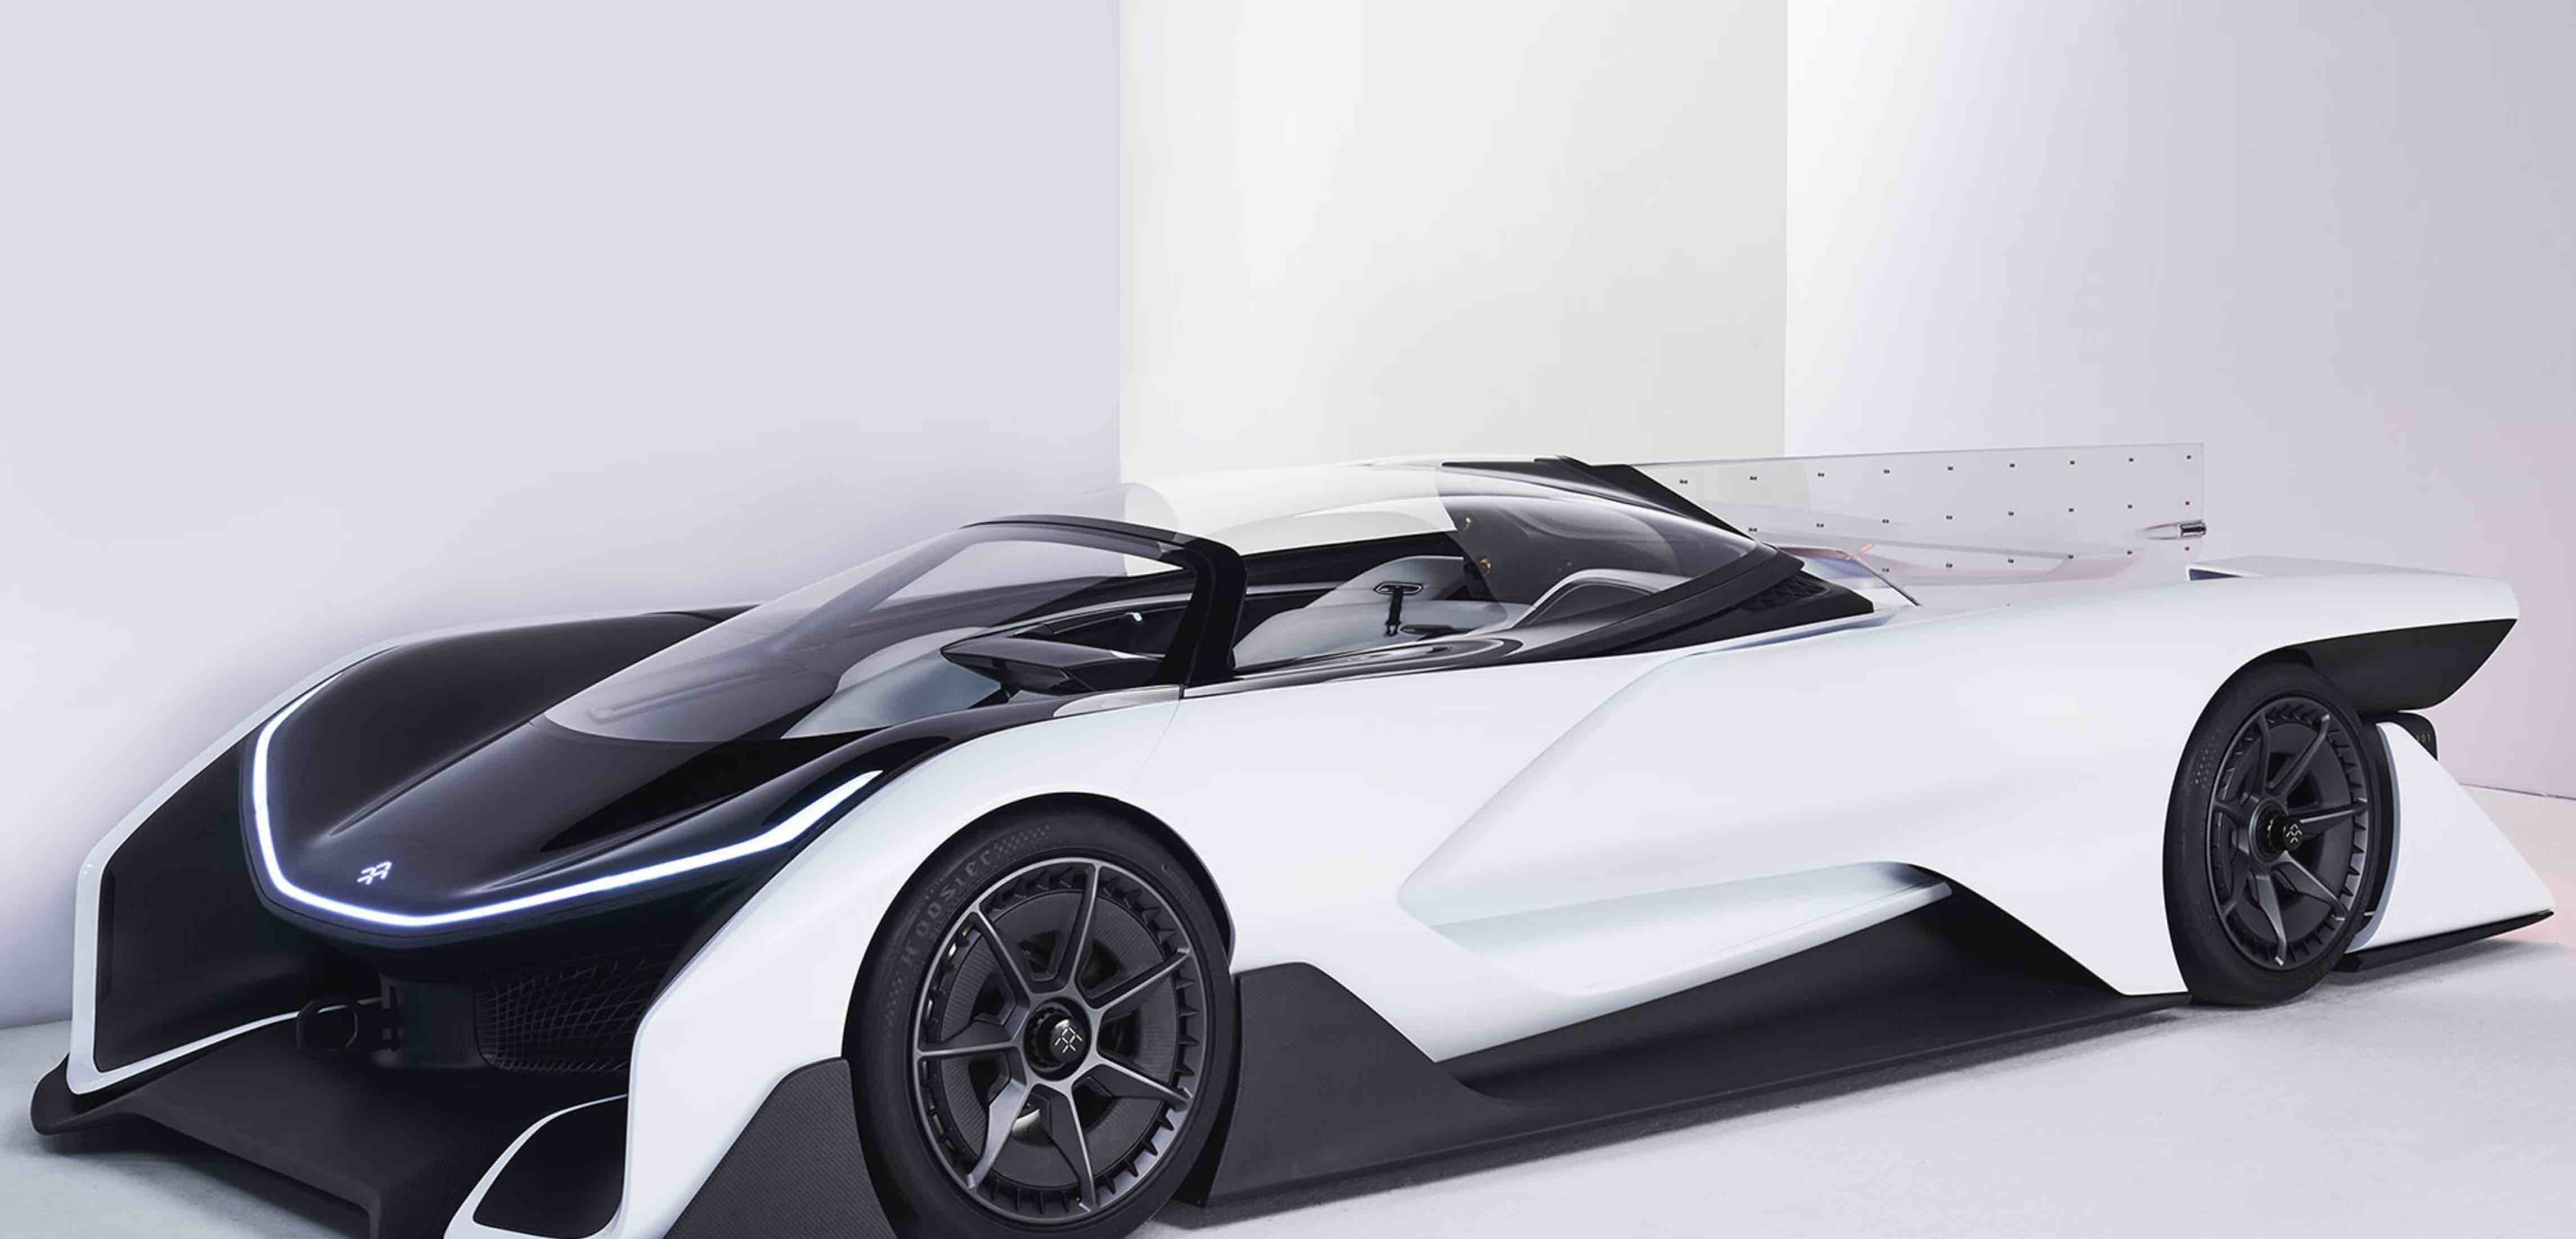 Faraday Future released a teaser video for their new electric car this week. California-based car manufacturer will unveil its much-hyped new electric car